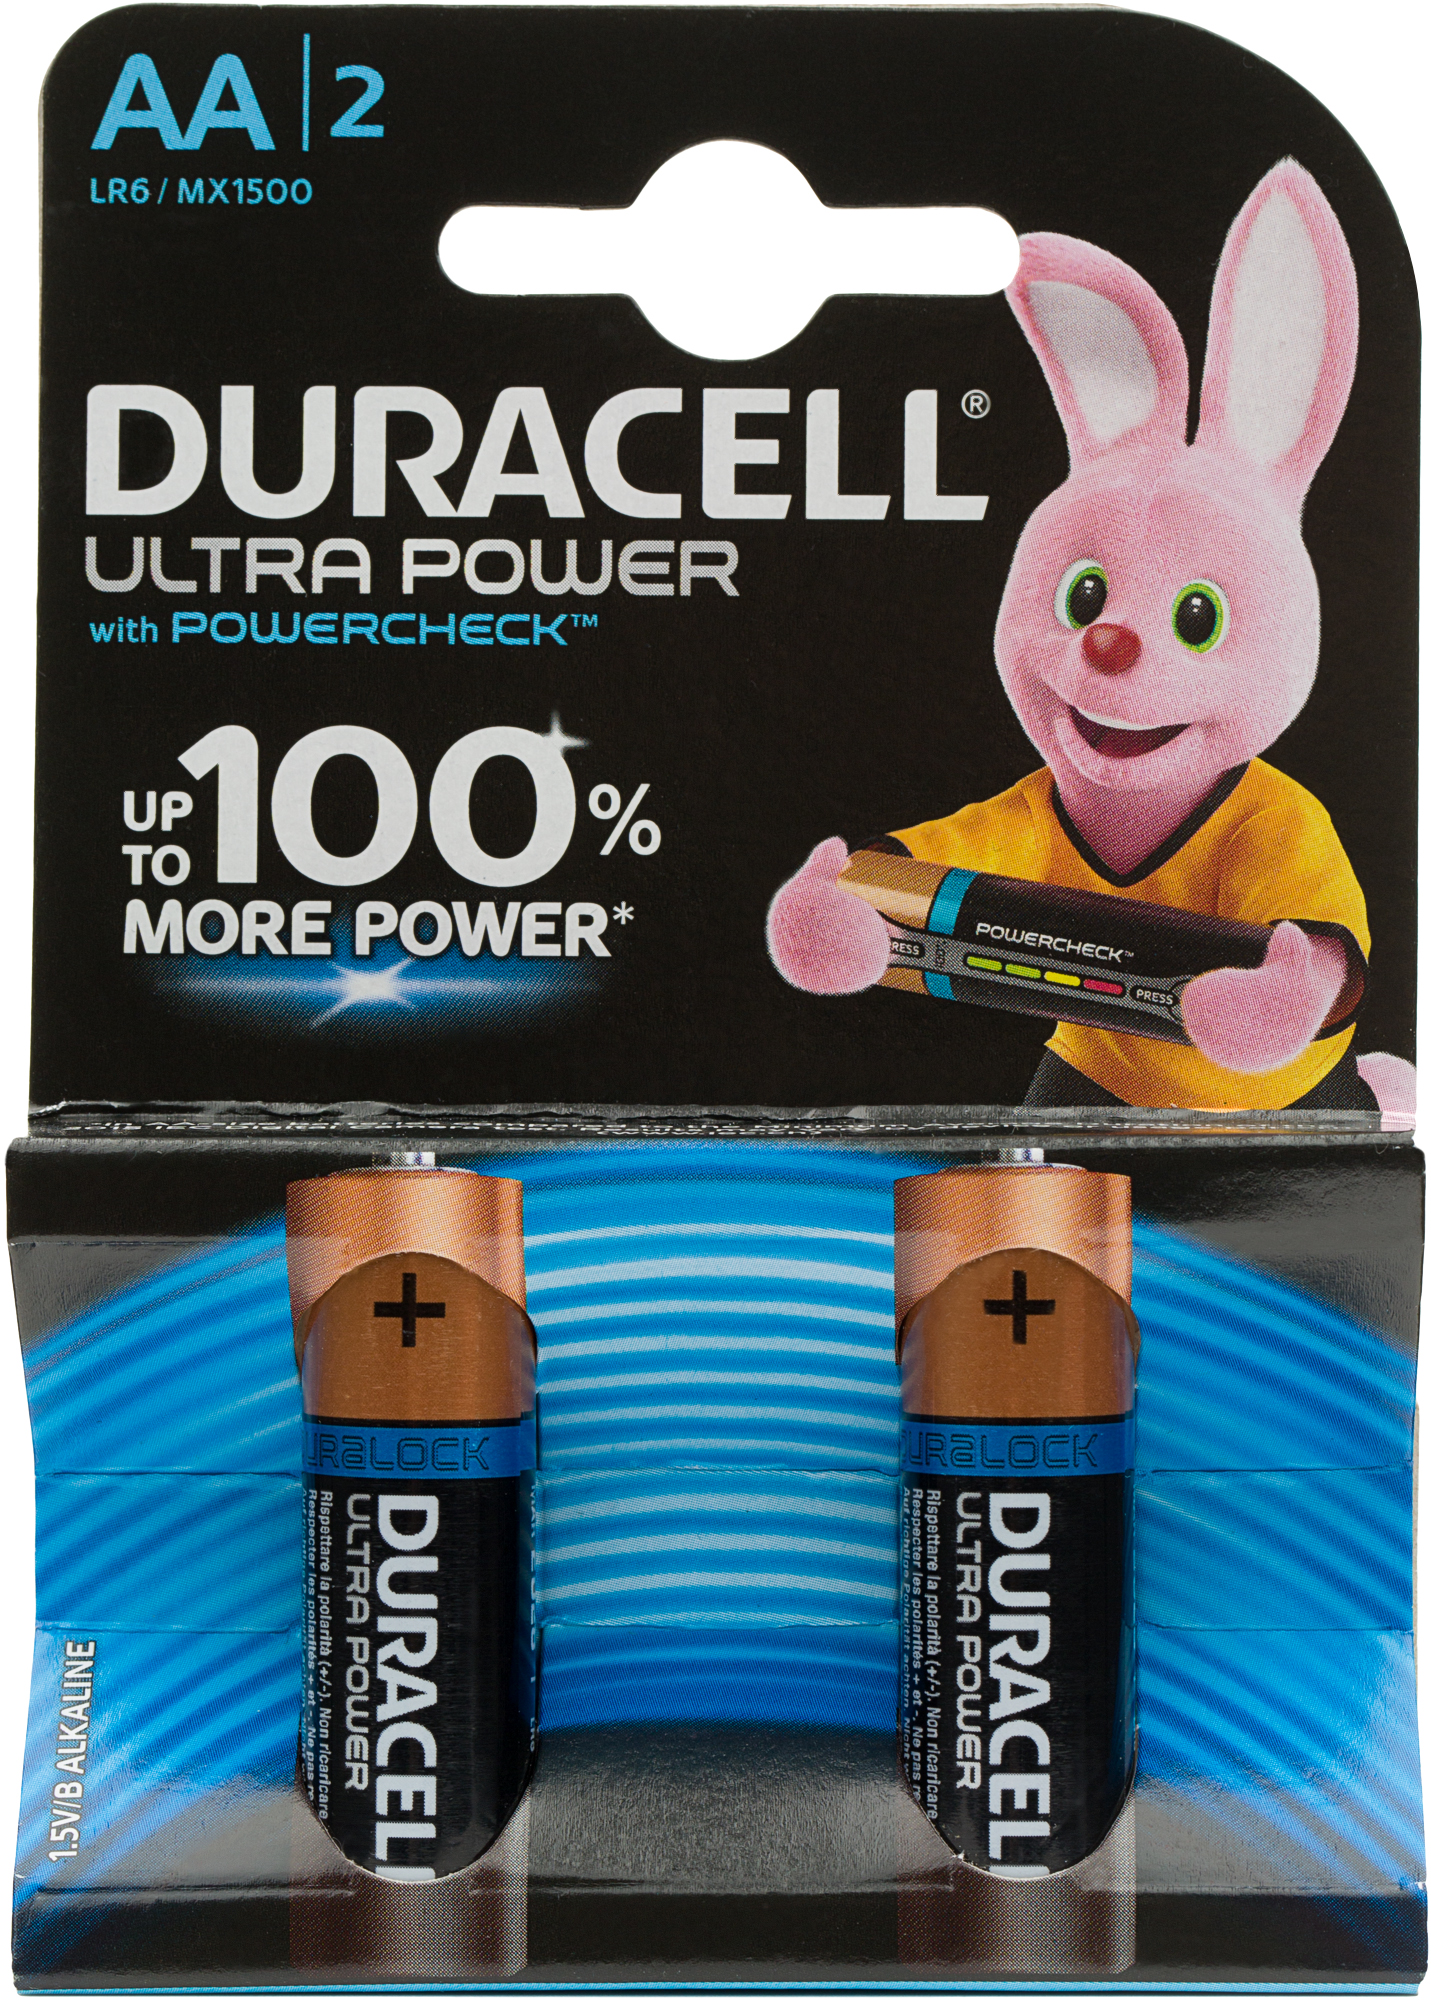 Duracell Батарейки щелочные Duracell Ultra Power АА/LR6, 2 шт. цена и фото